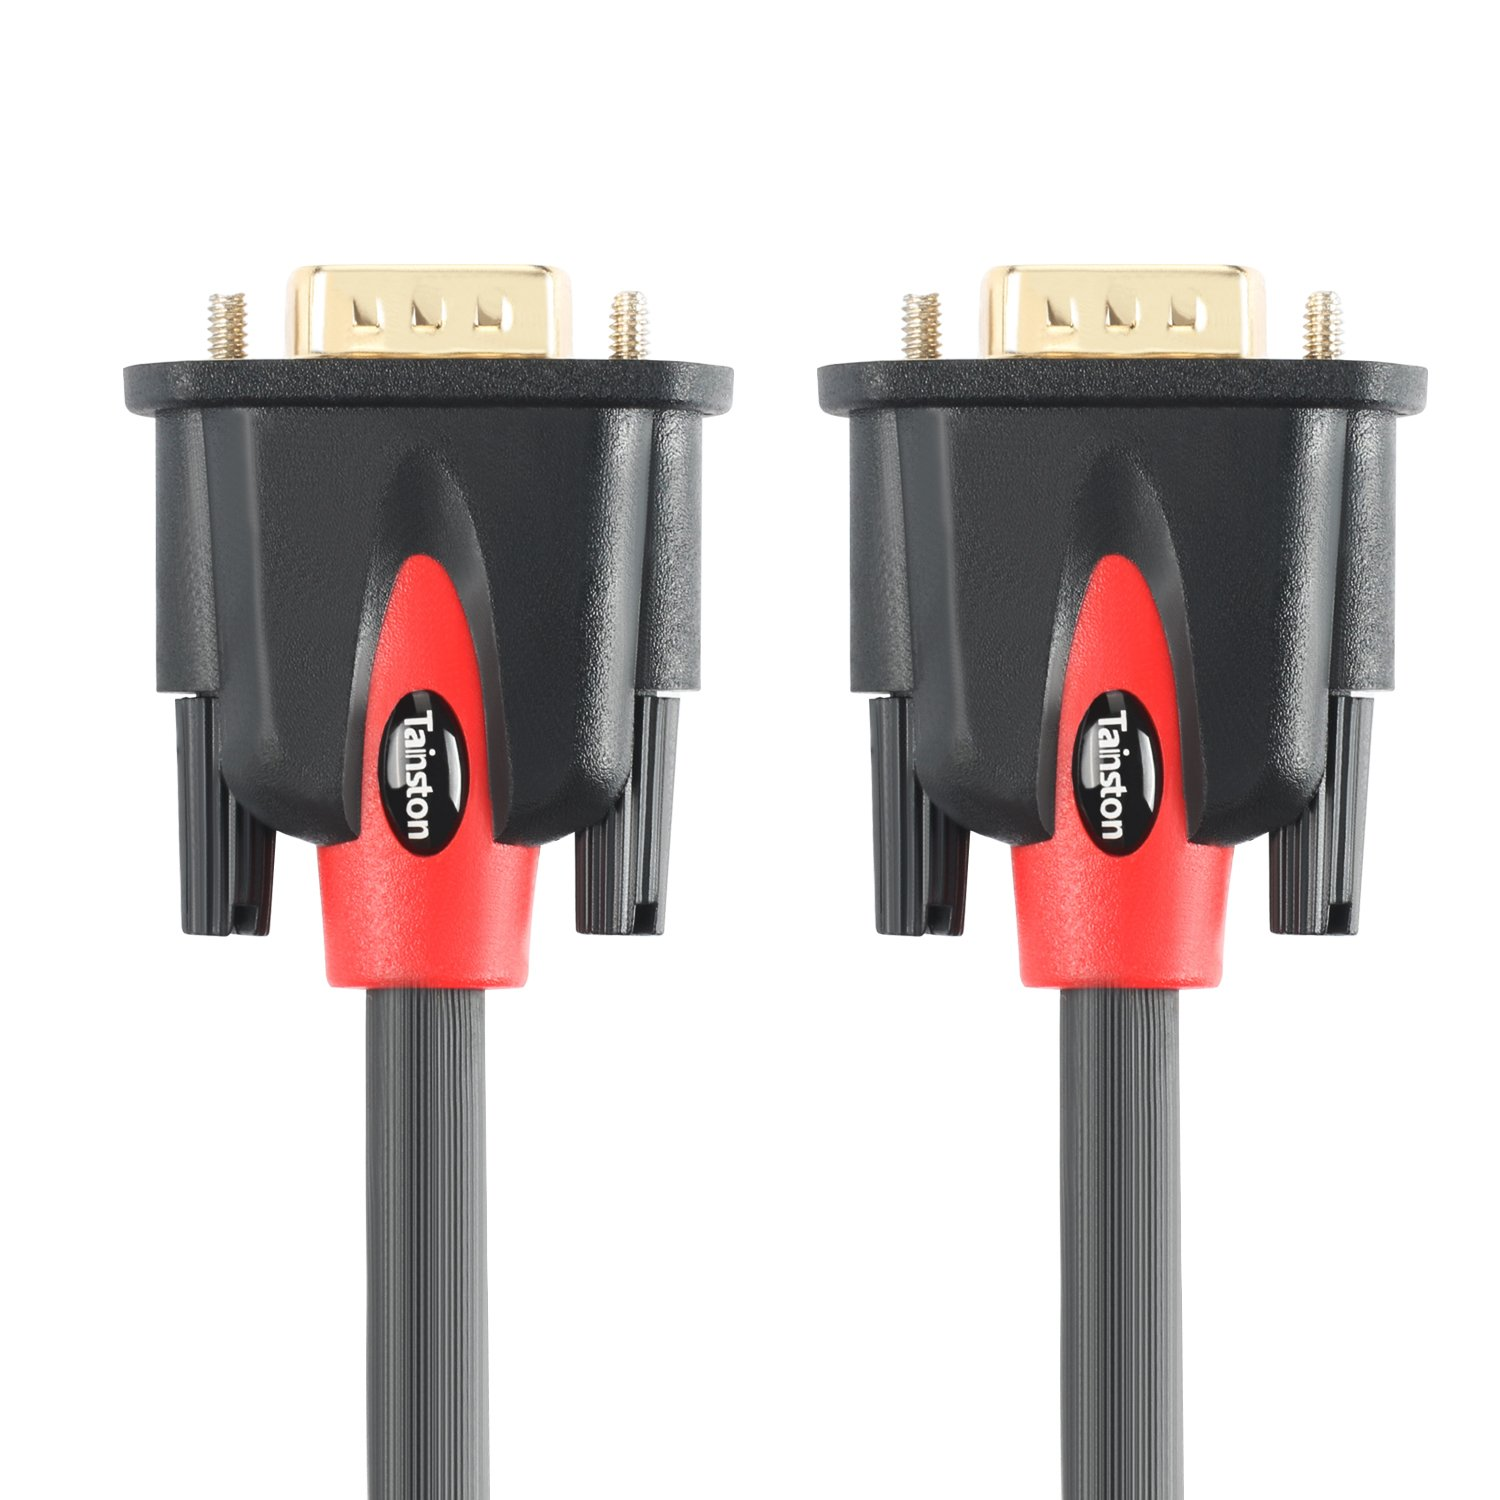 Tainston VGA to VGA Cable HD15 Monitor Cable with Ferrites Male to Male-20 Feet by Tainston